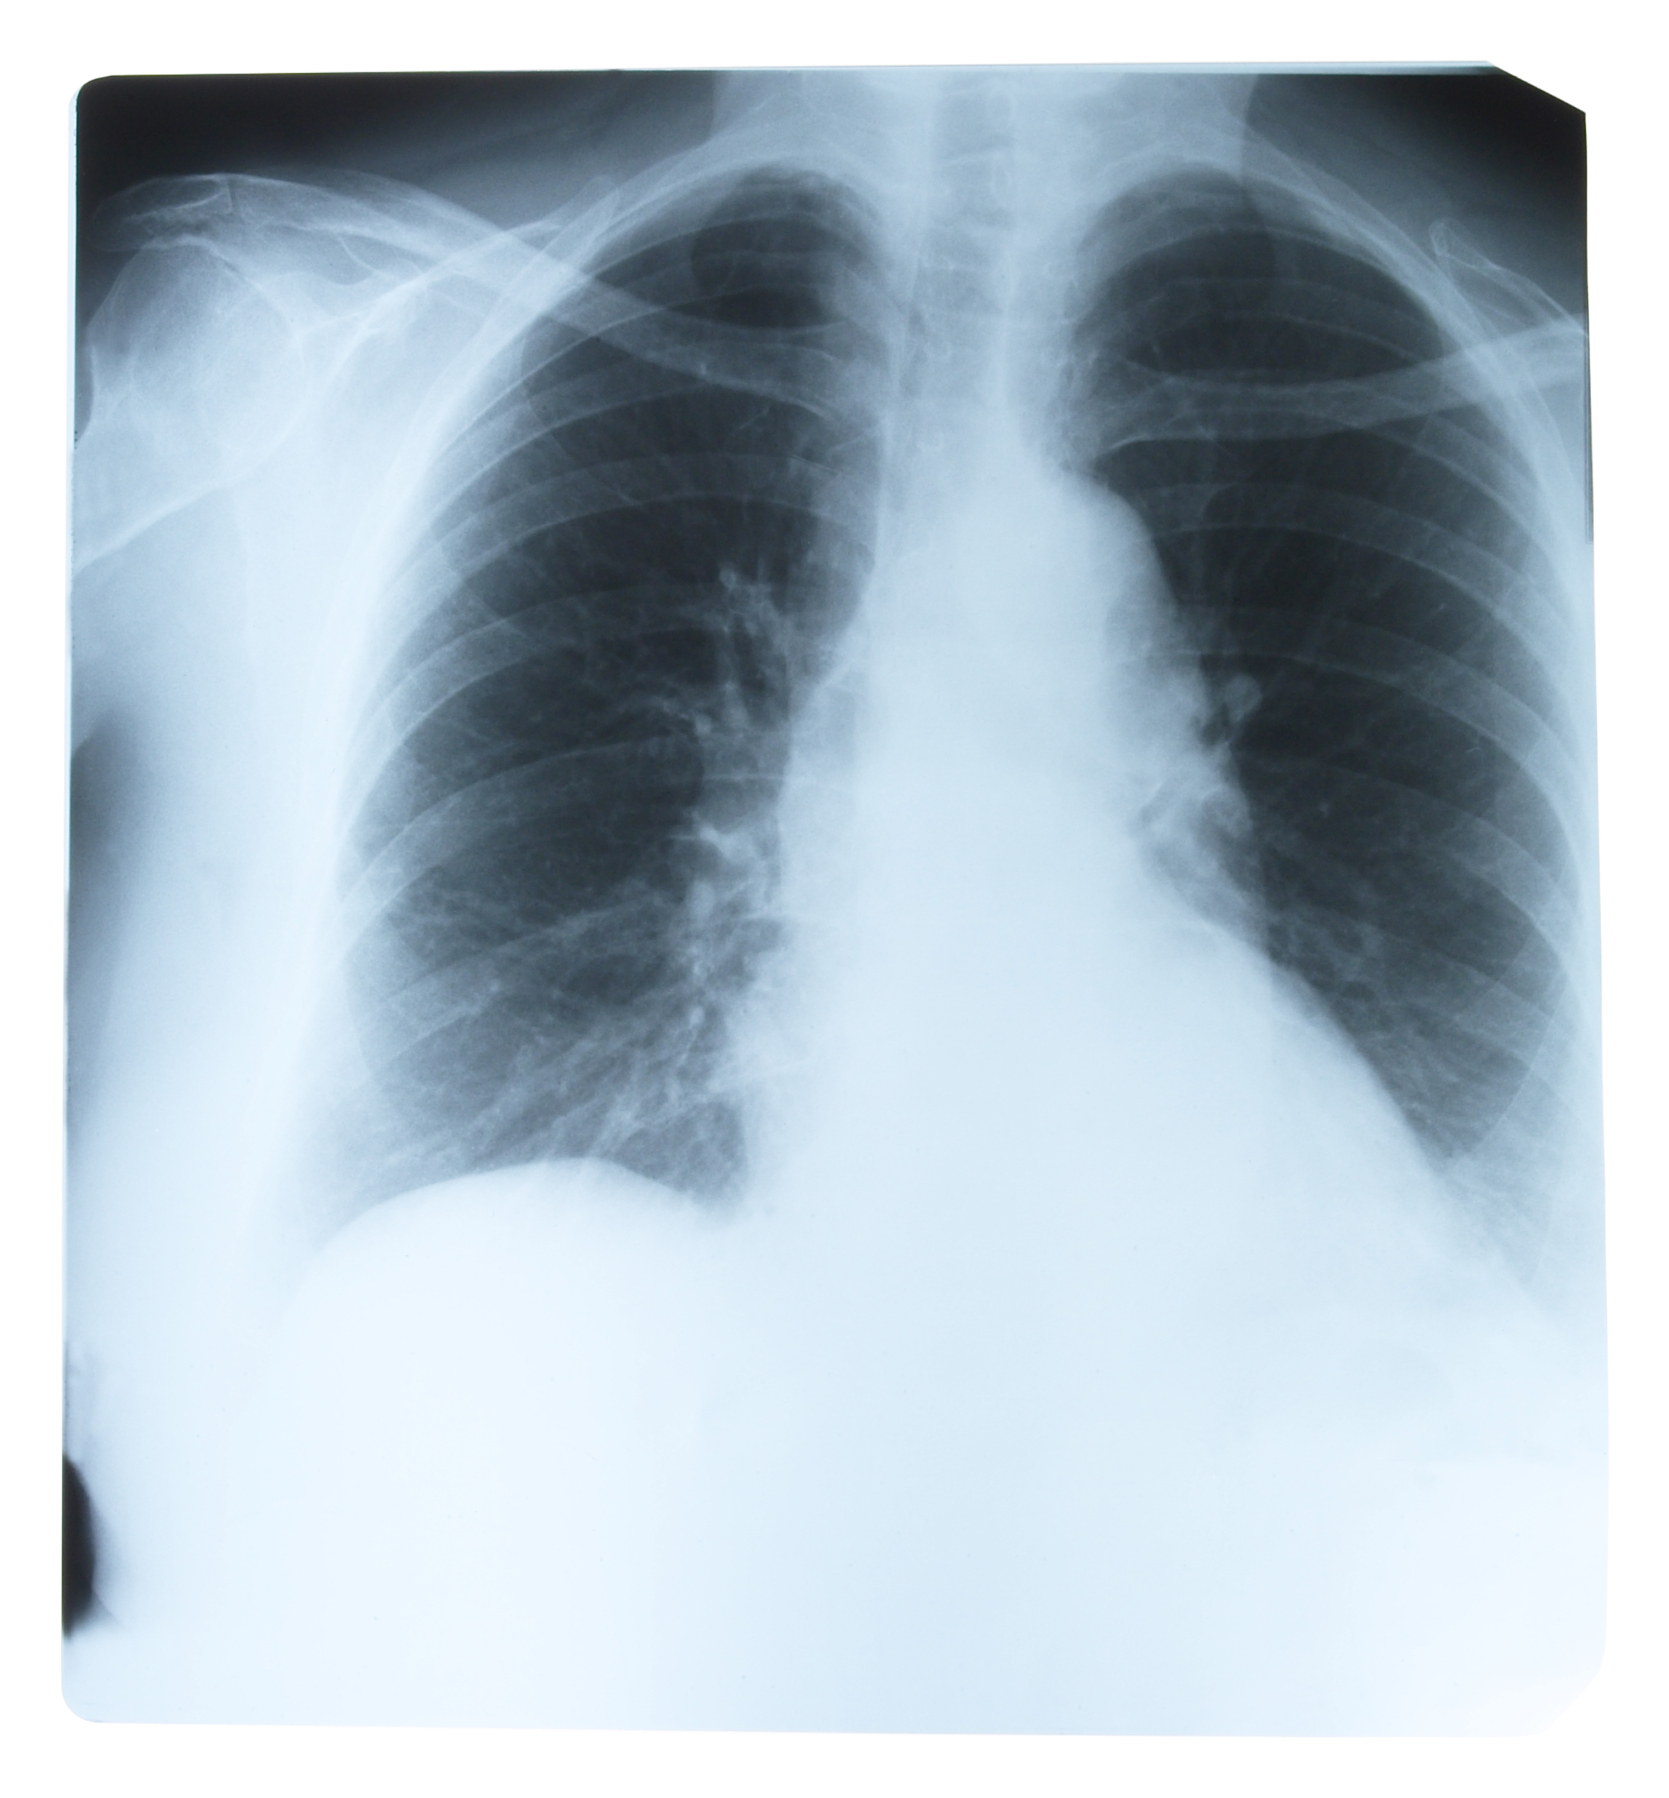 Learn about pulmonology topics